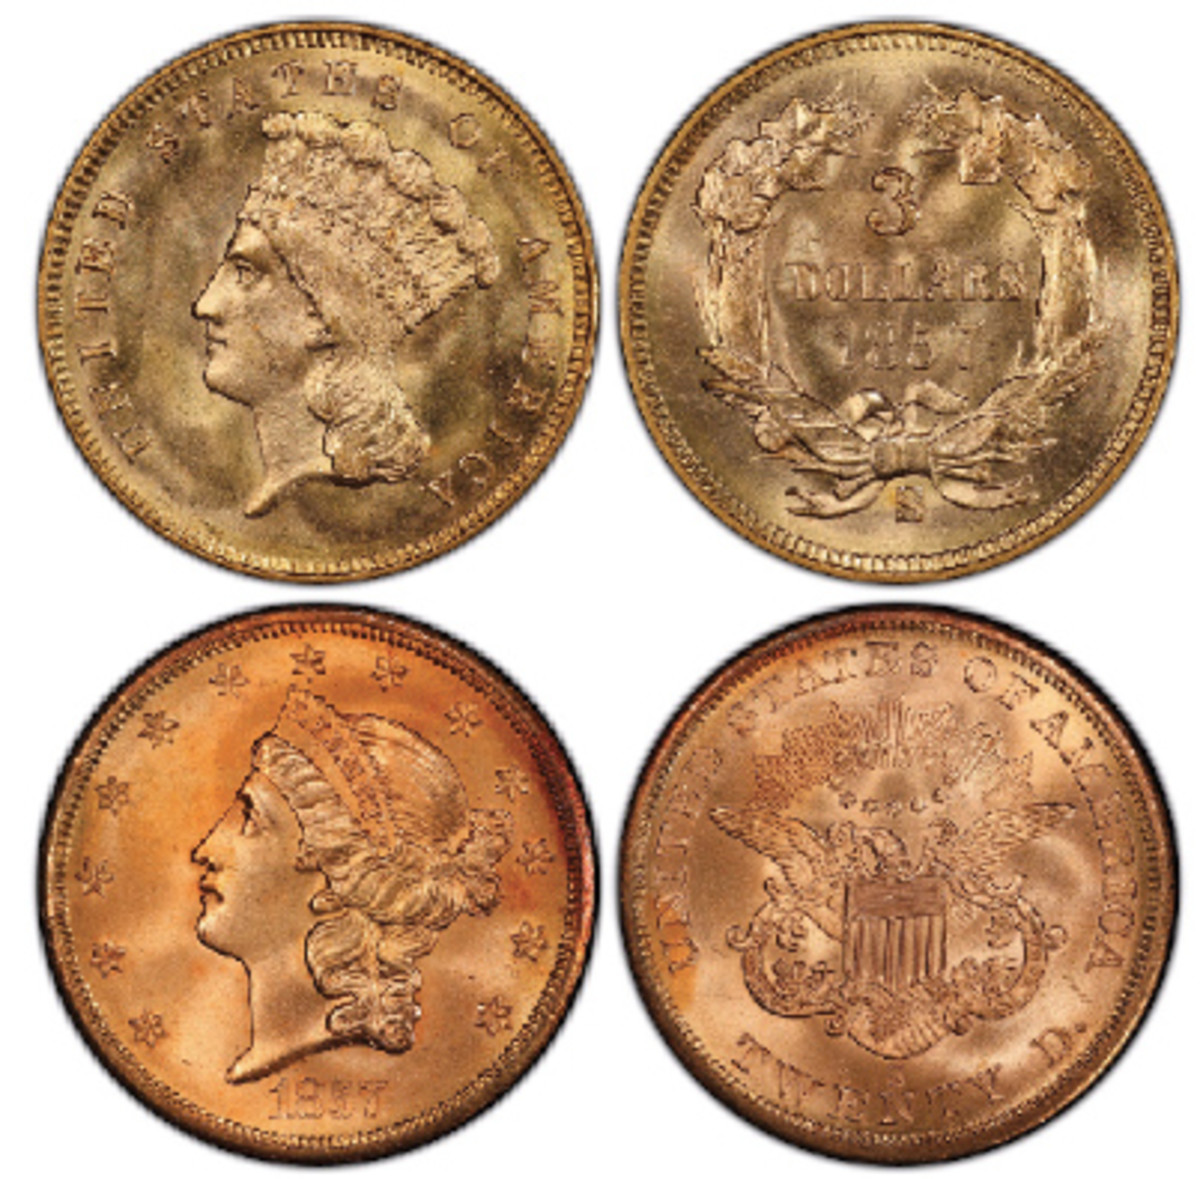 (Images courtesy Professional Coin Grading Service, www.PCGS.com)